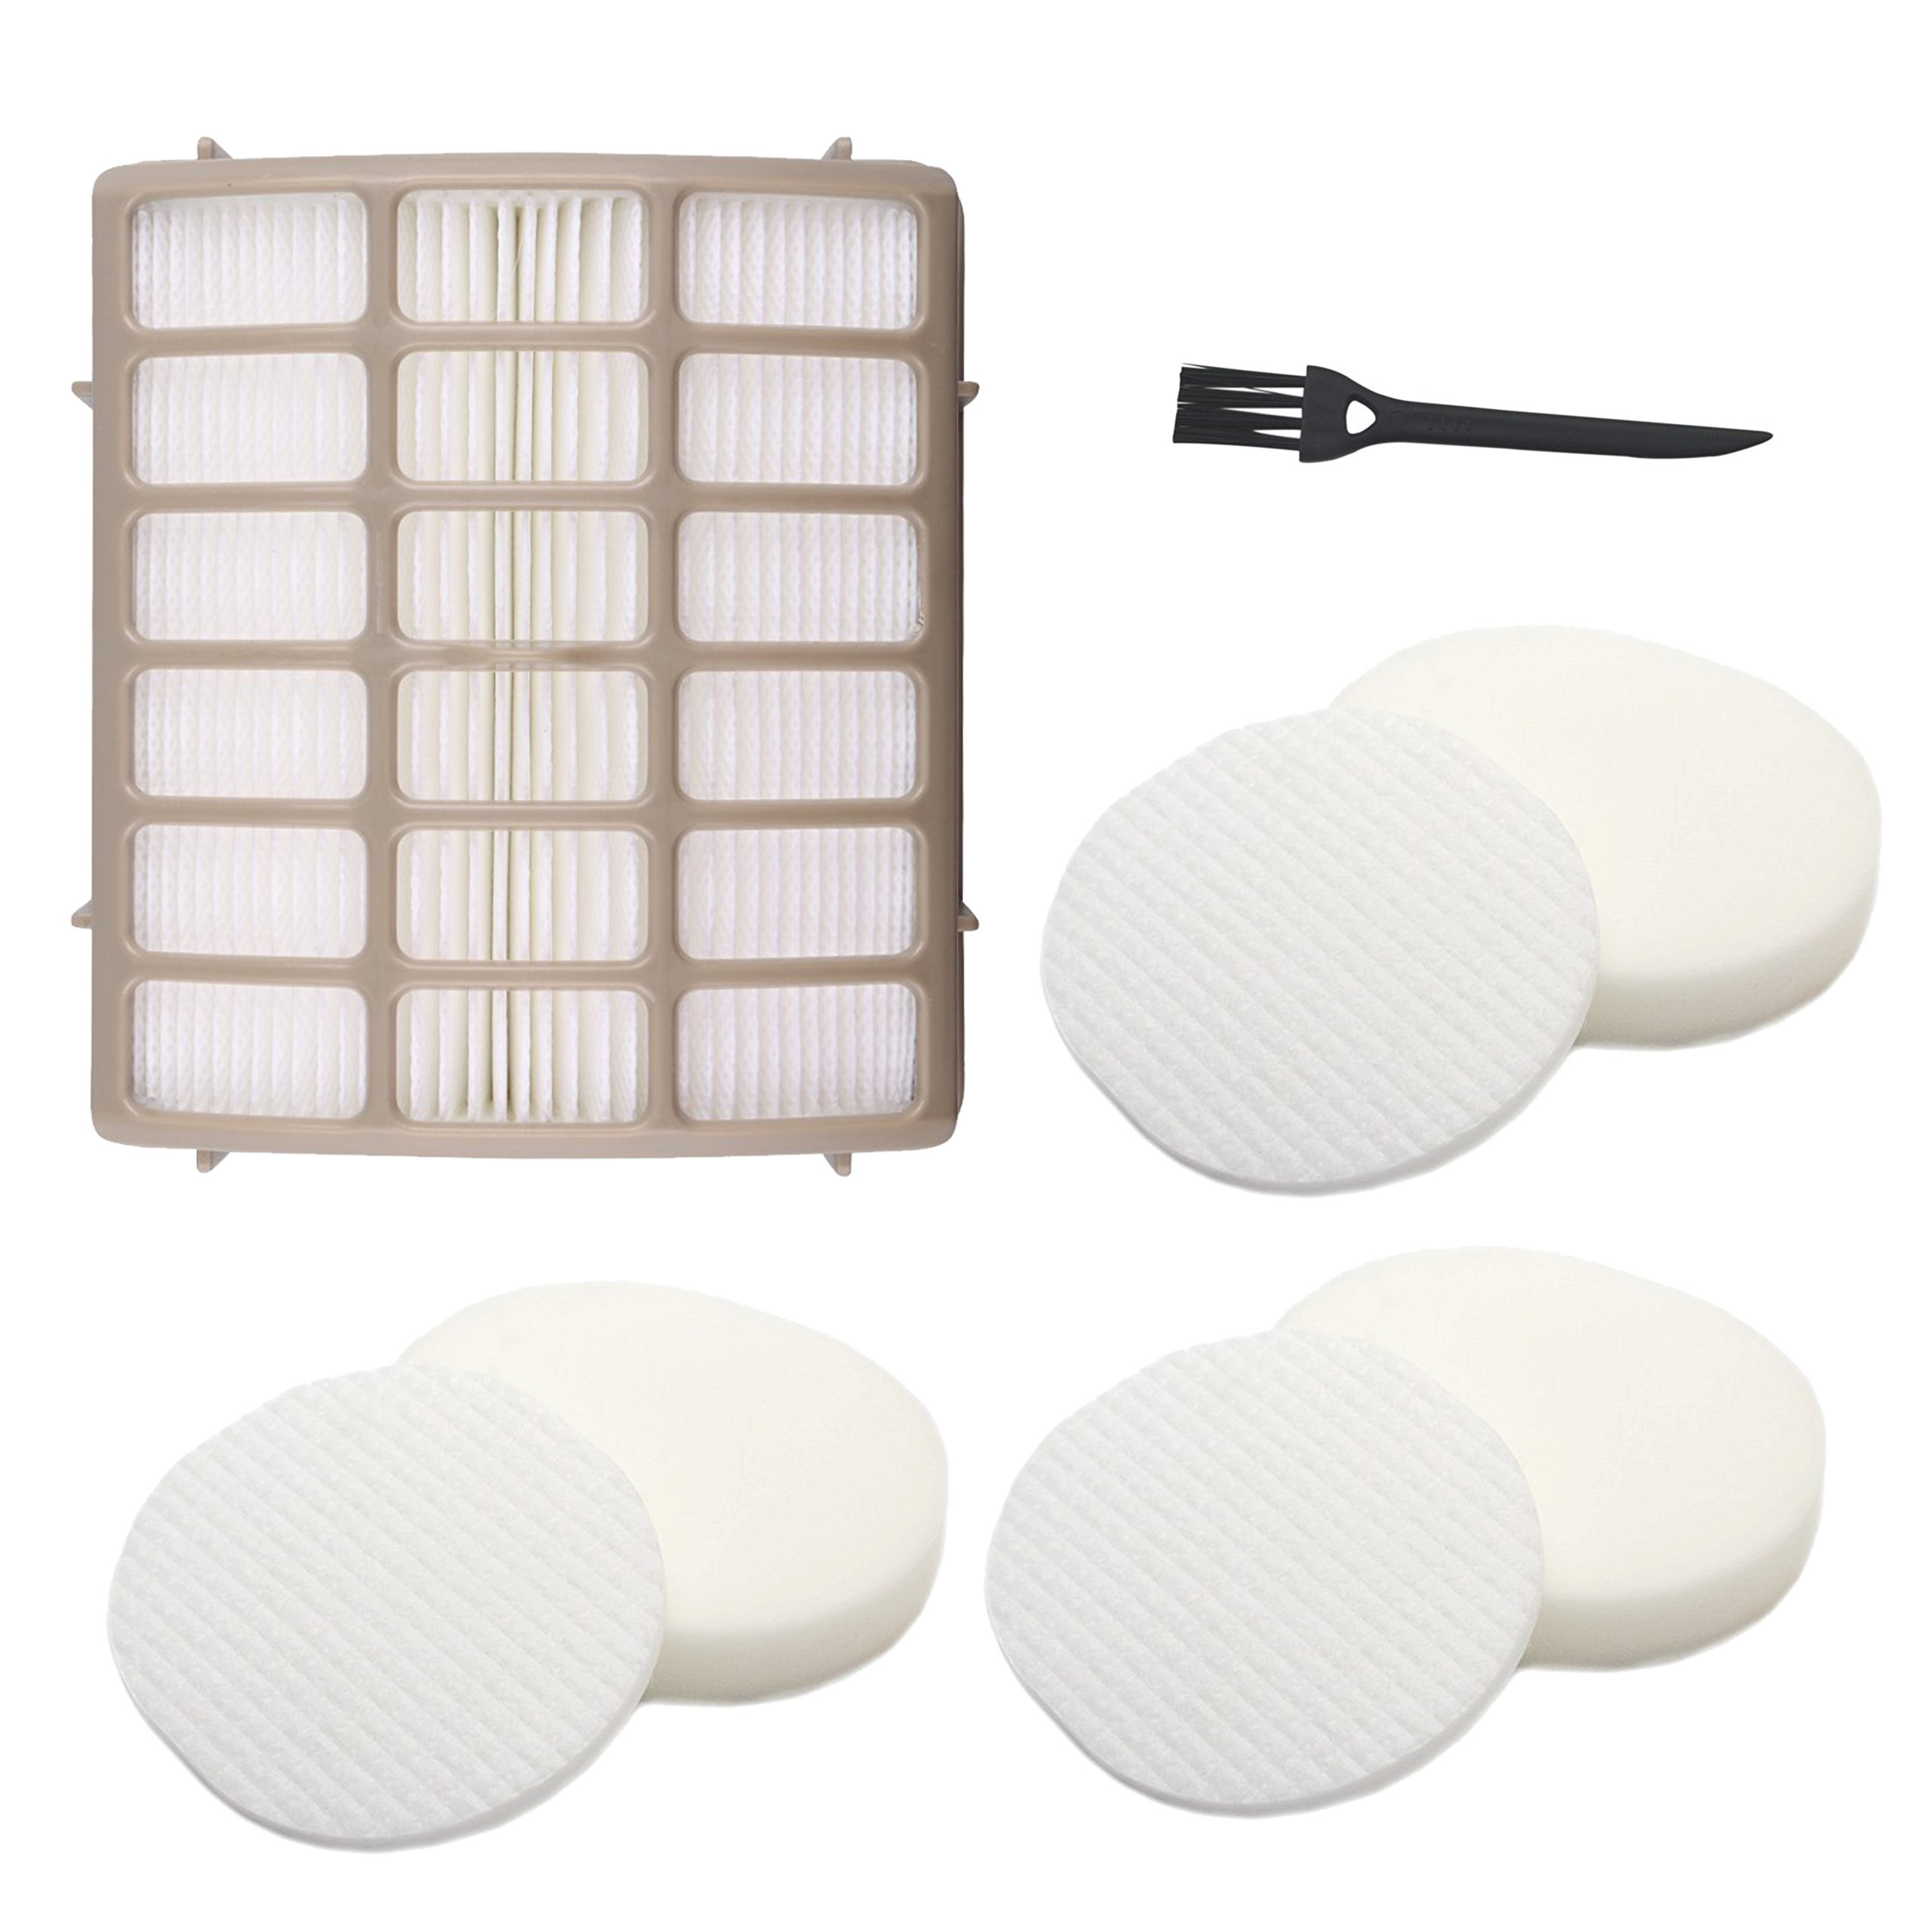 3 Foam & Felt + 1 Hepa Filters, Shark Navigator Rotator Professional Upright Vacuum NV70 NV71 NV80 NVC80C NV90 NV95 UV420 Filter Kit Replacement Part XFF80 XHF80 by Dttery